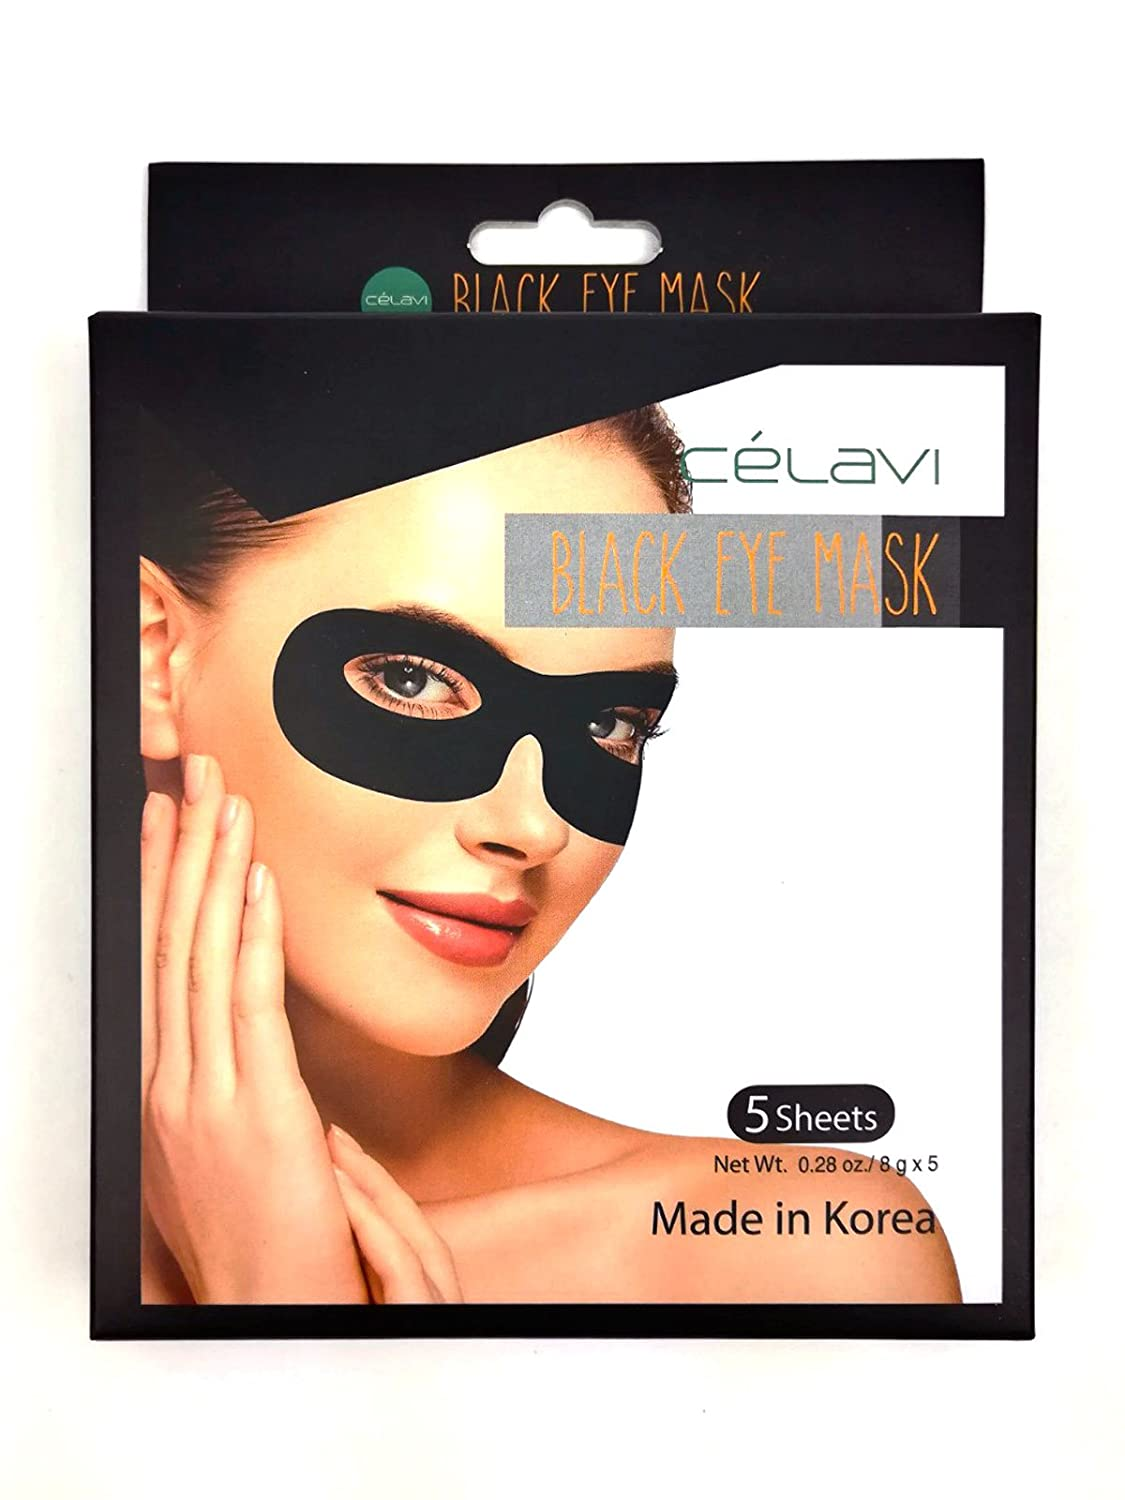 Amazon.com : Celavi Moisturizing & Regerenating Black Eye Mask Pack - 5 SHEETS (NATURAL FRUIT & OIL EXTRACTS) : Beauty